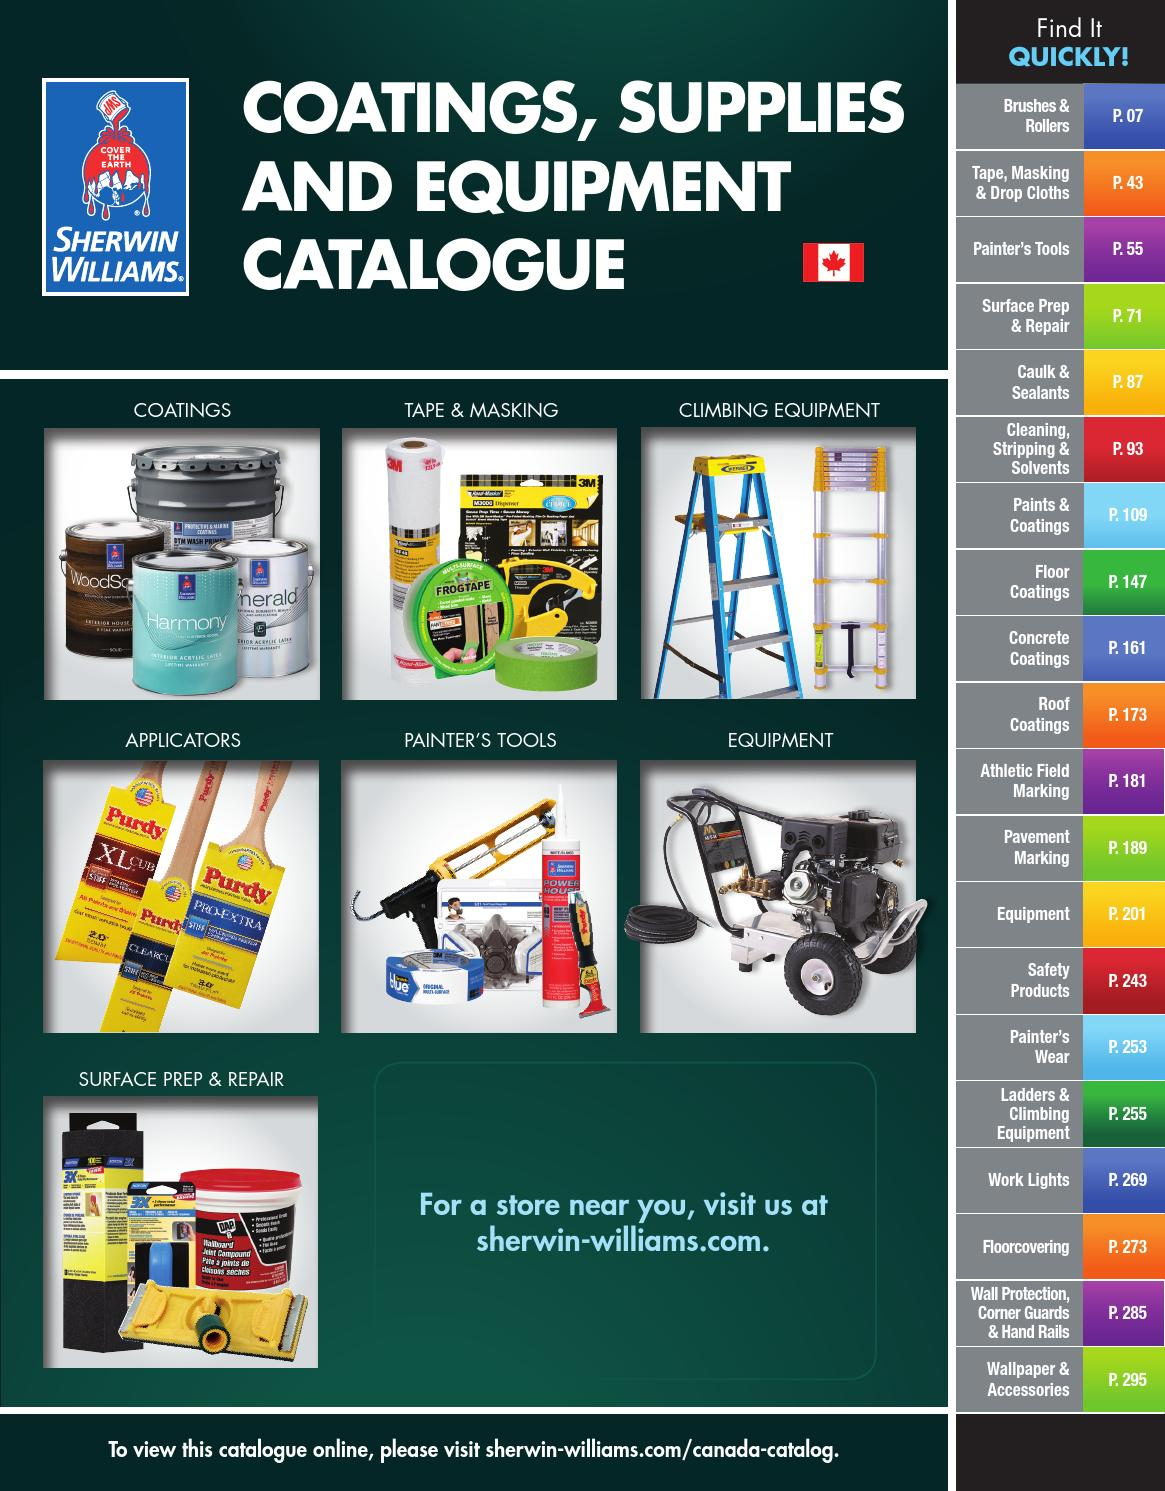 Sherwin williams canada catalogue coatings supplies sherwin williams canada catalogue coatings supplies equipment by sherwin williams issuu nvjuhfo Images